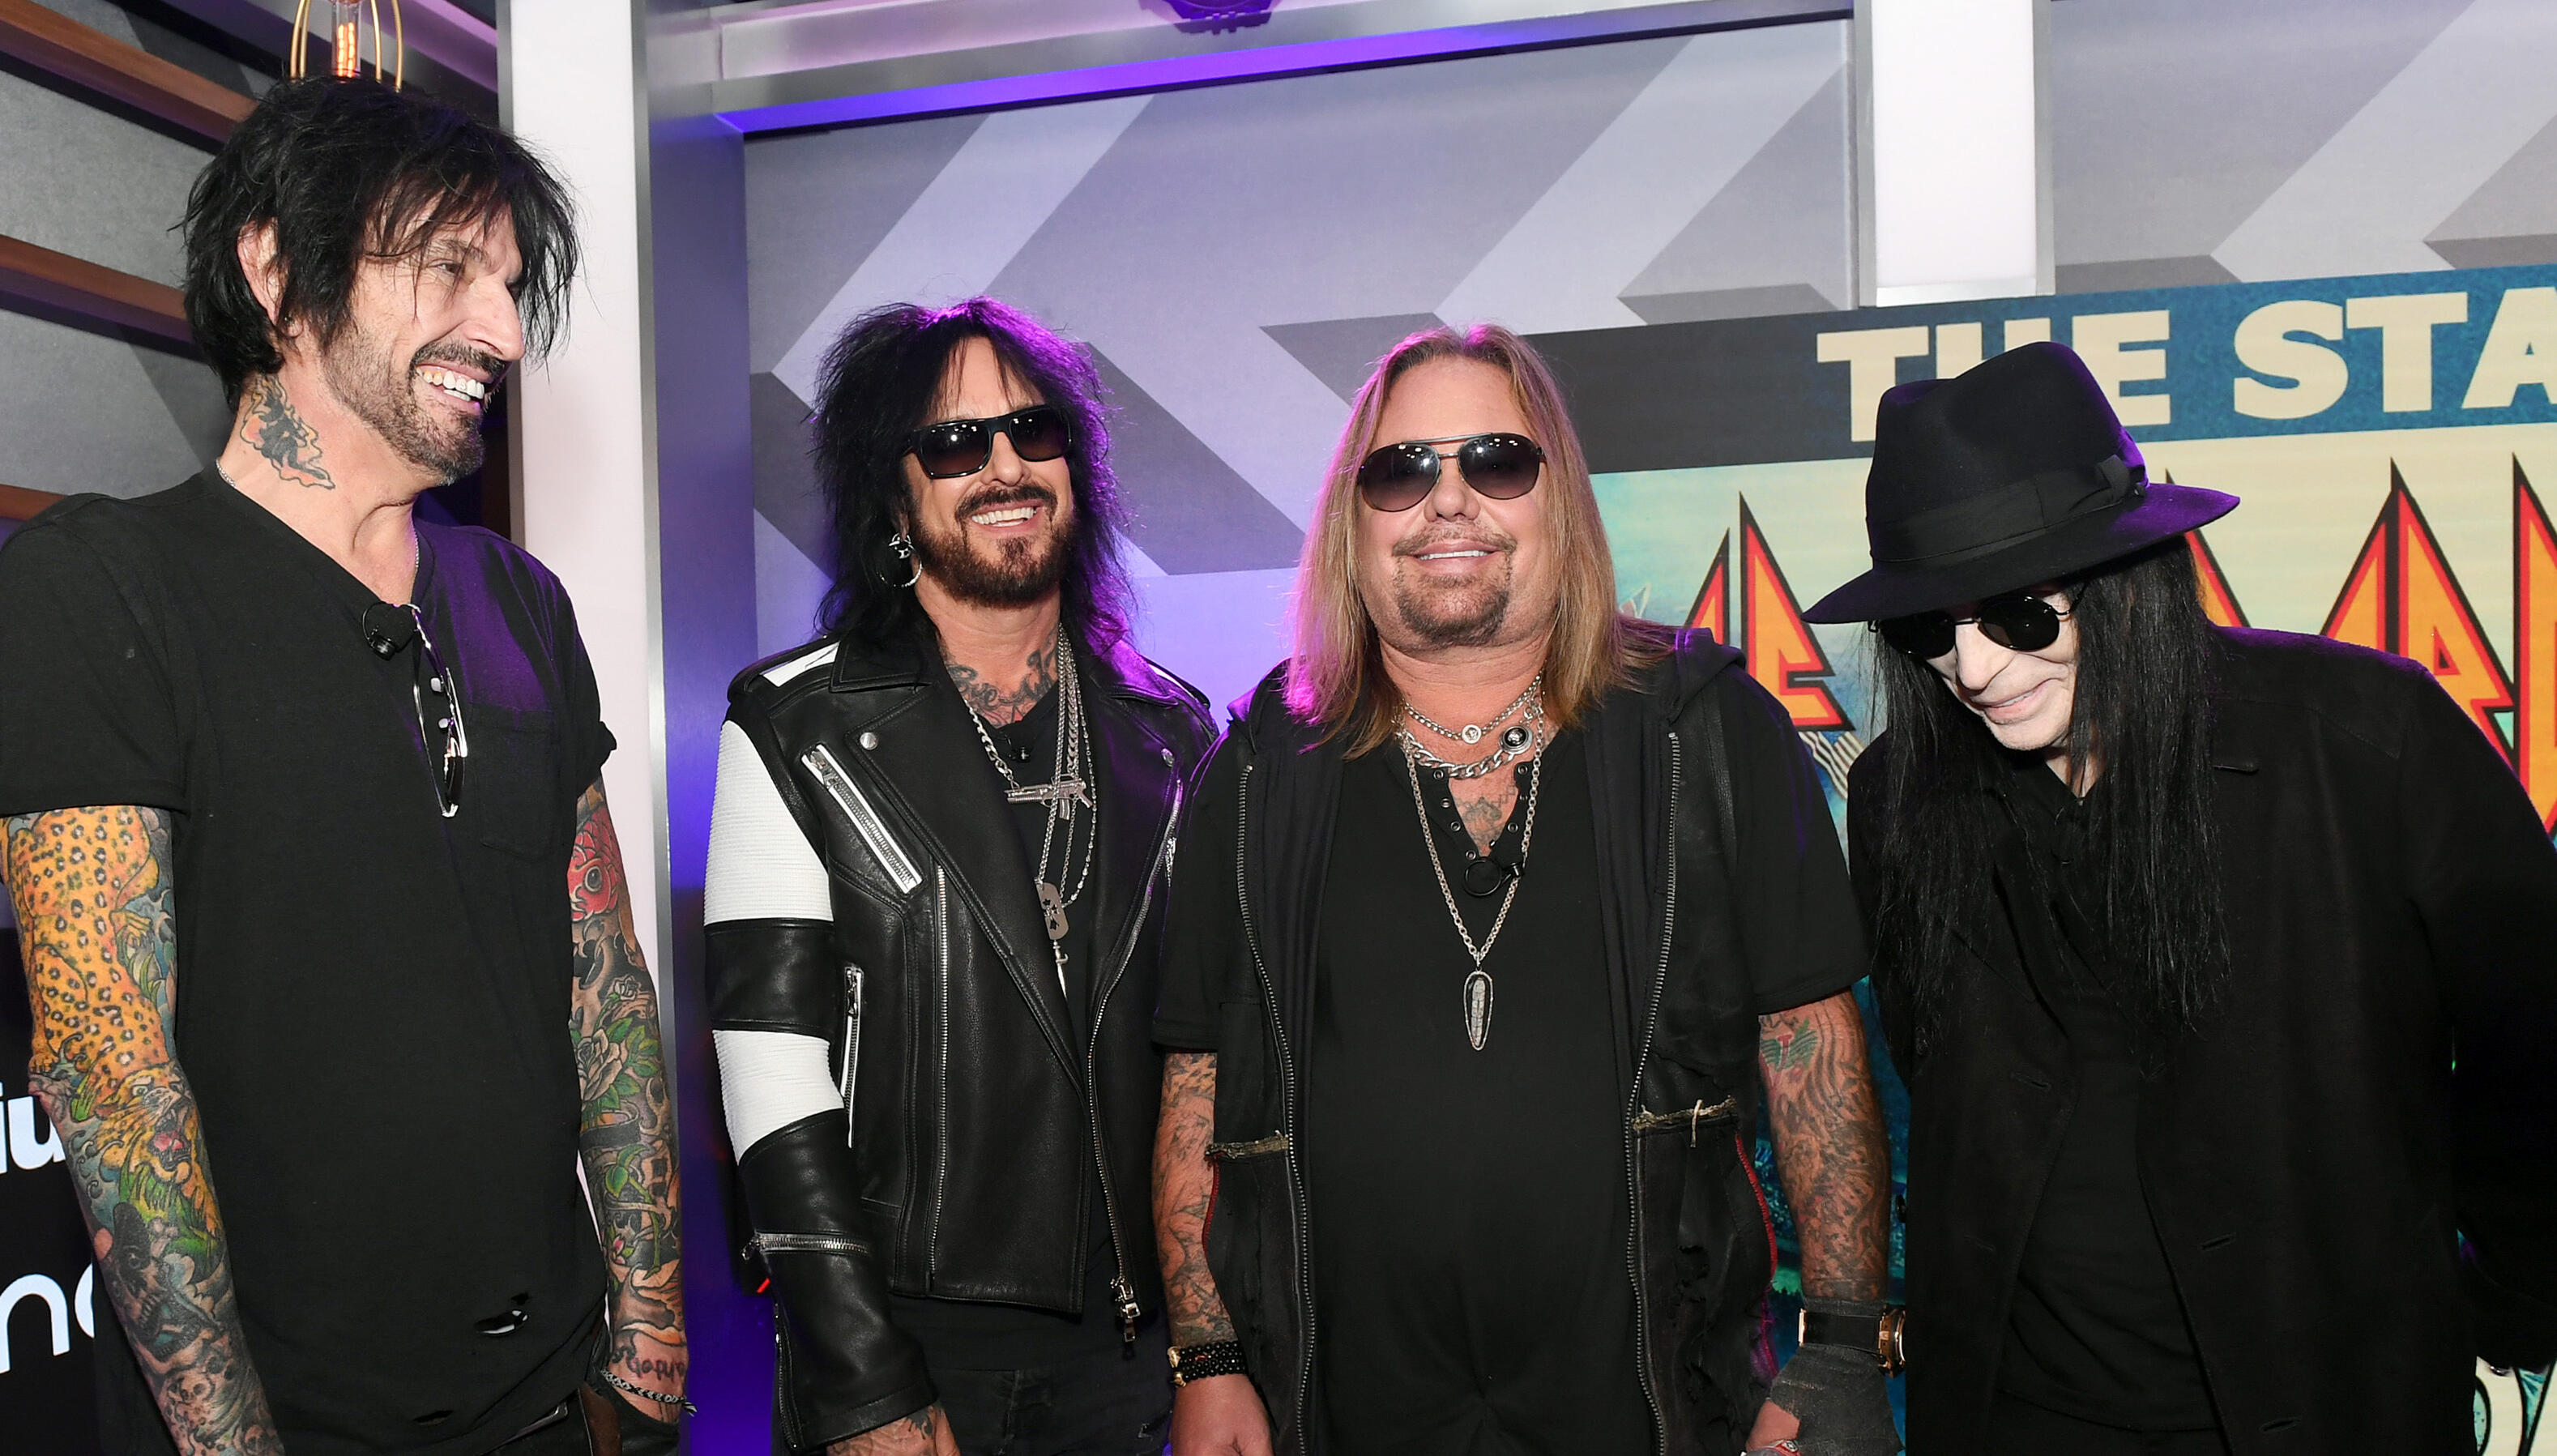 Mötley Crüe, Def Leppard's 'Stadium Tour' Has Sold 1 Million Tickets | 1070 The Game